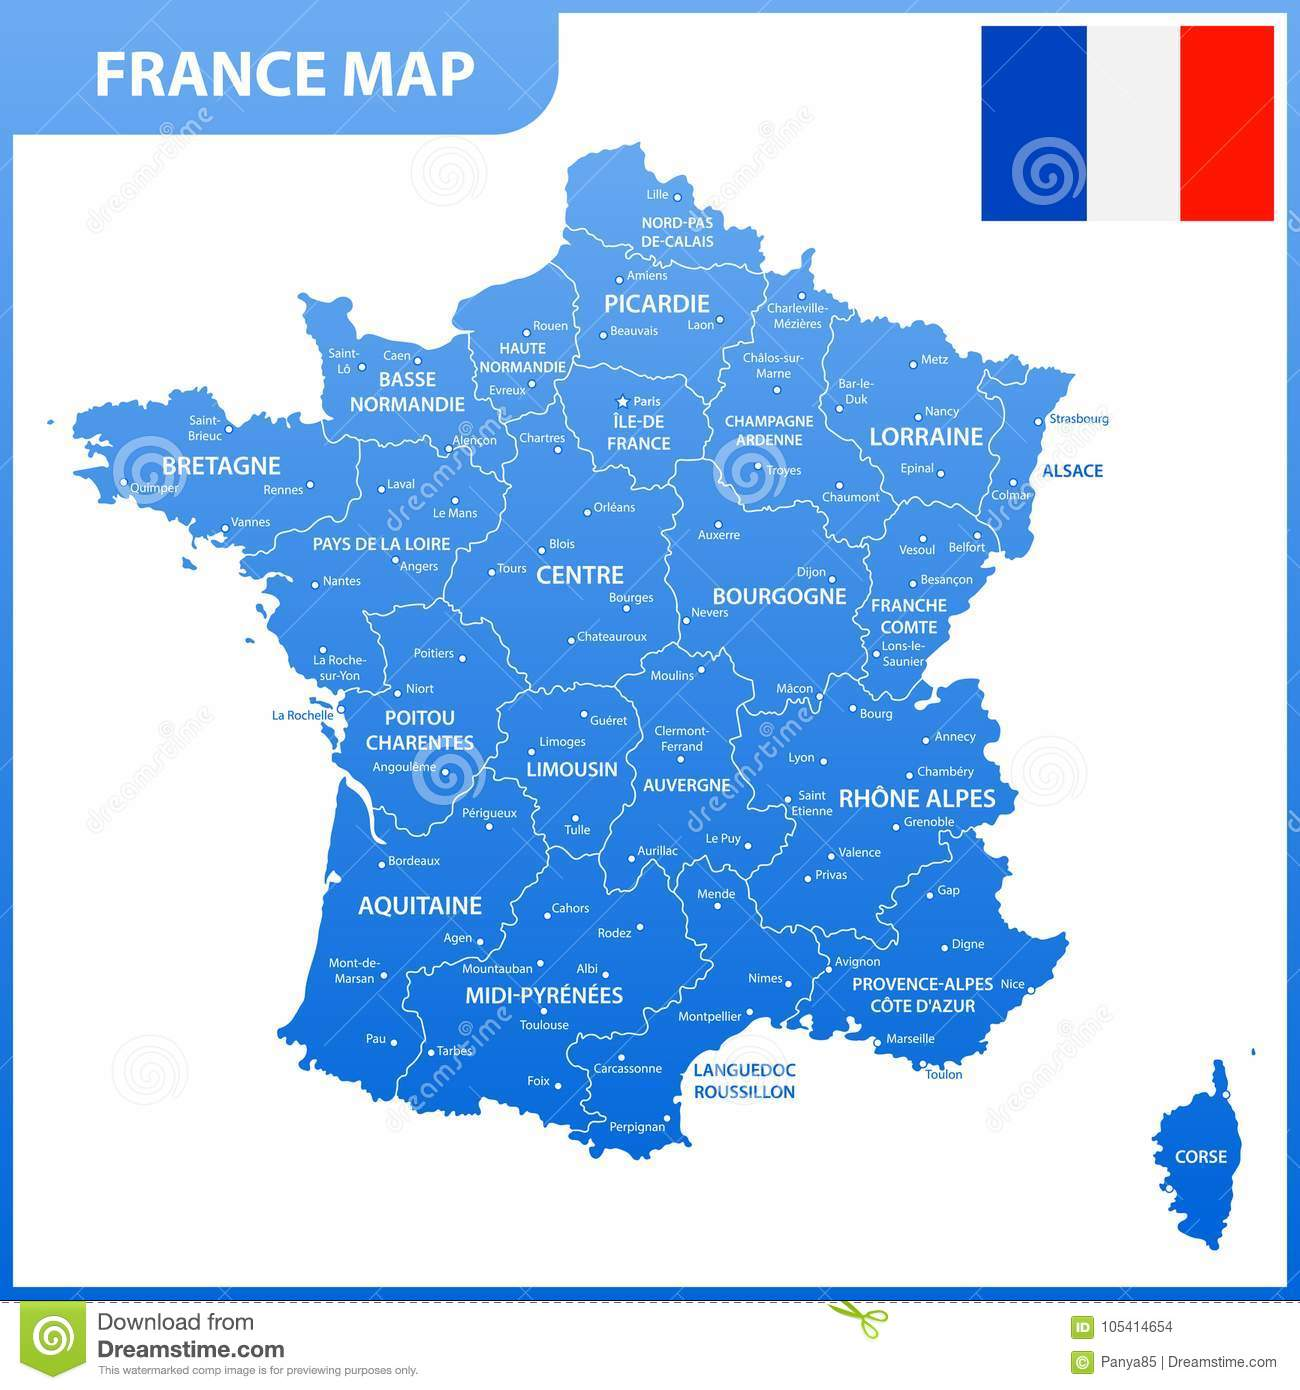 Map Of France With Regions And Cities.The Detailed Map Of The France With Regions Or States And Cities